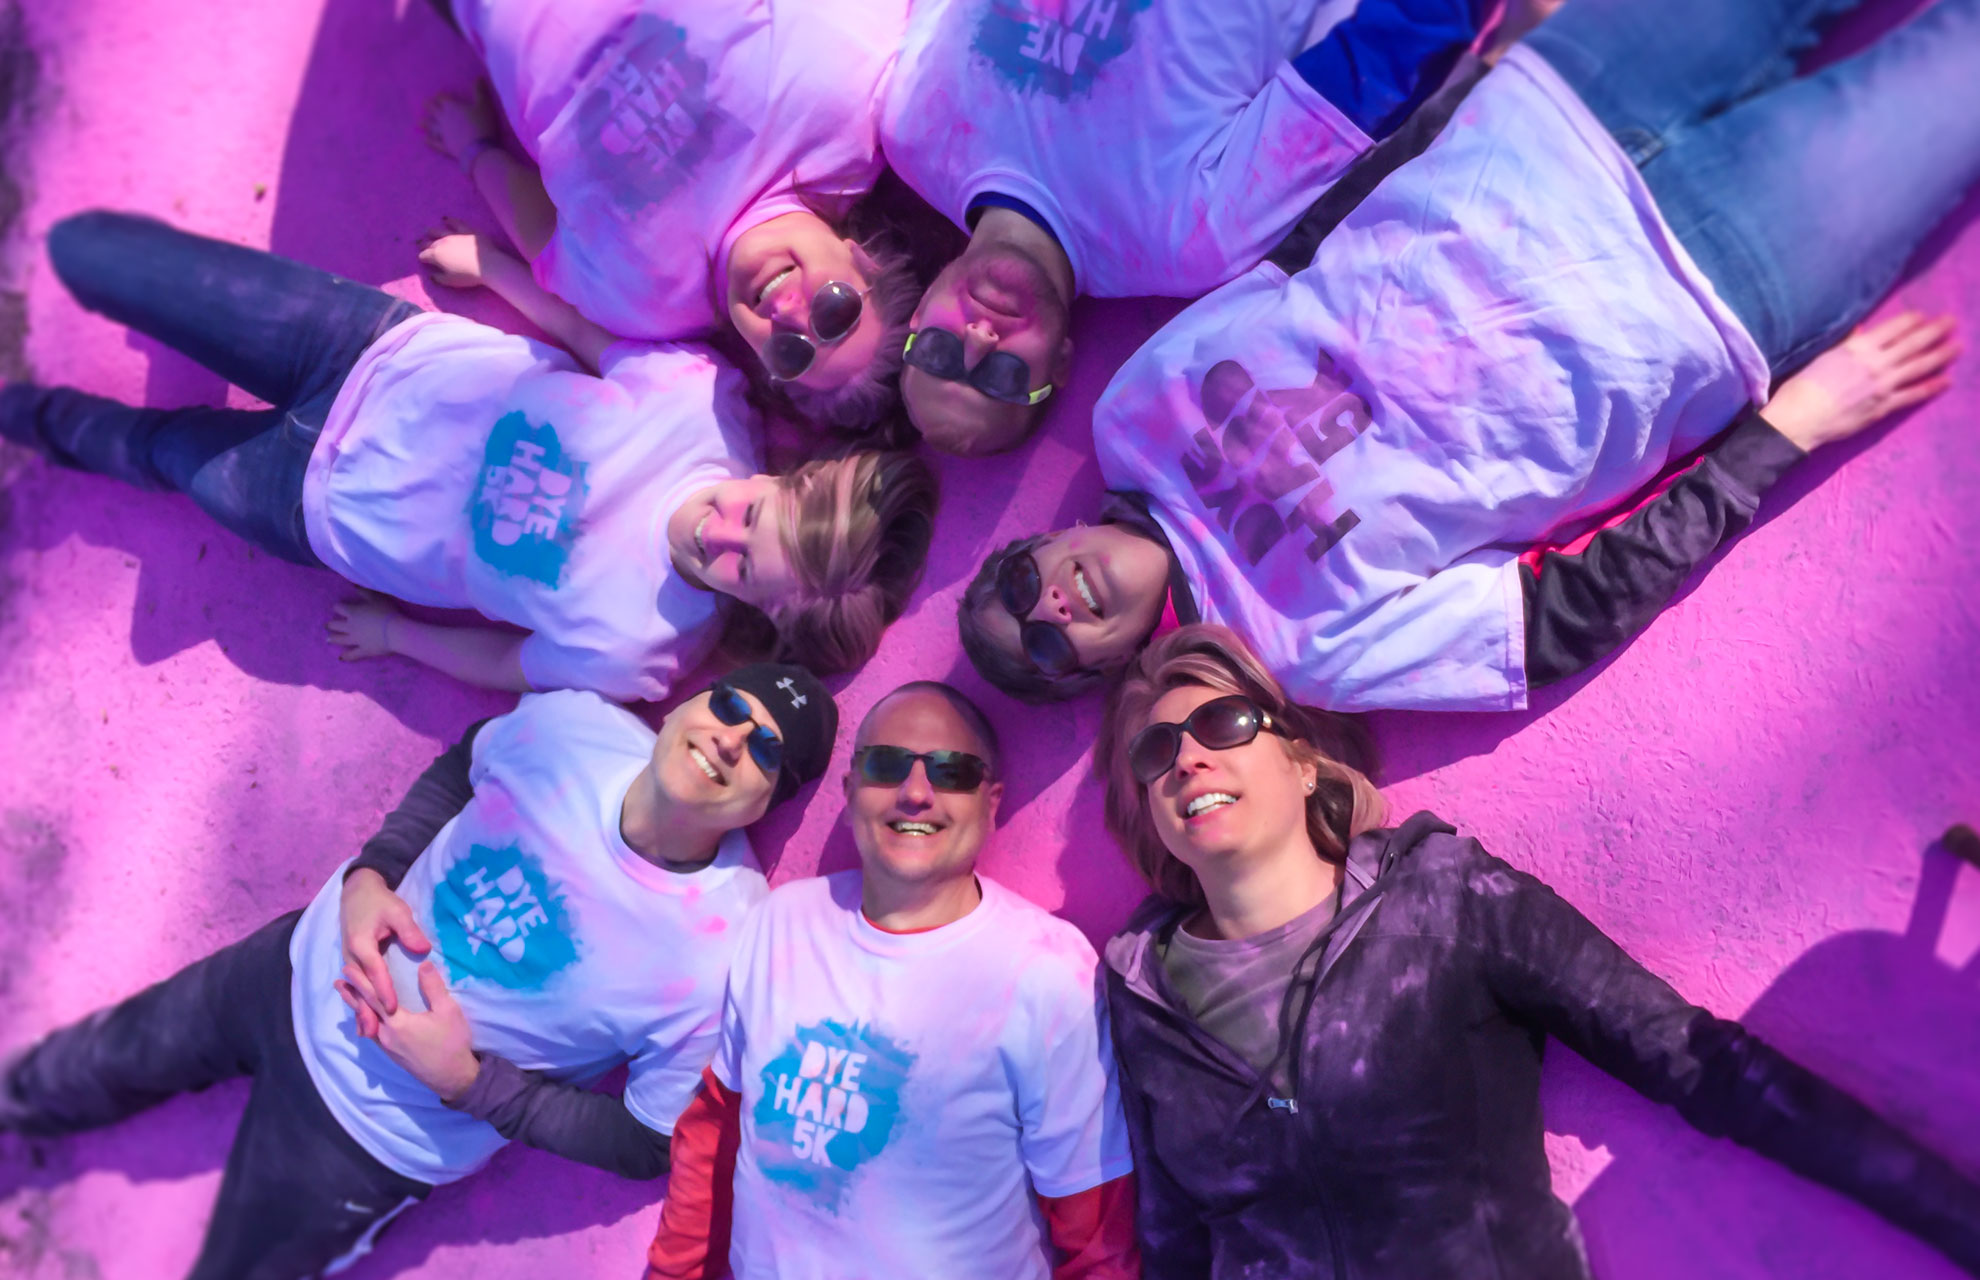 Holmes staff and family members laying on a dyed street after the Dye Hard 5K Color Run